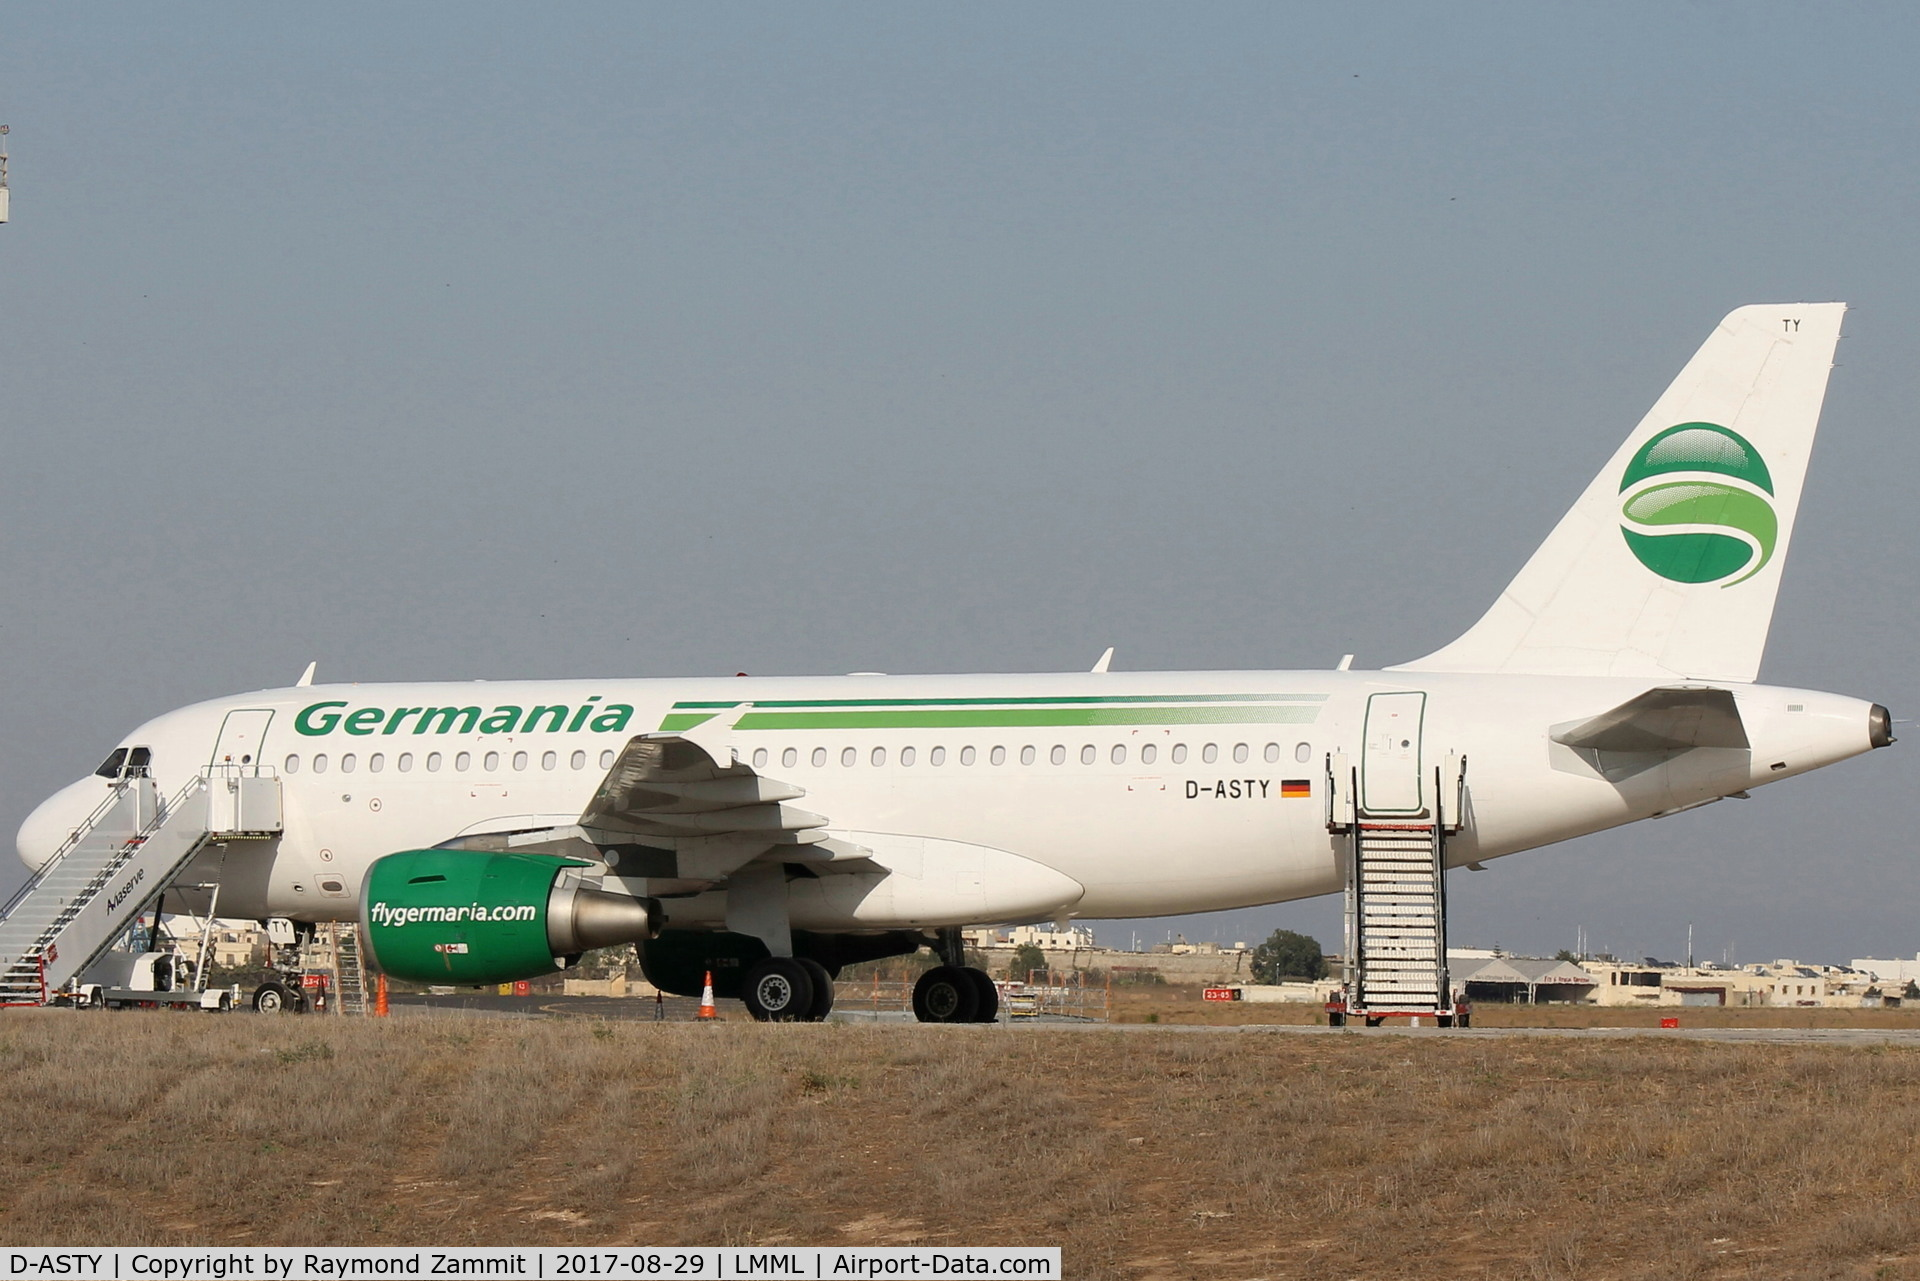 D-ASTY, 2008 Airbus A319-112 C/N 3407, A319 D-ASTY Germania